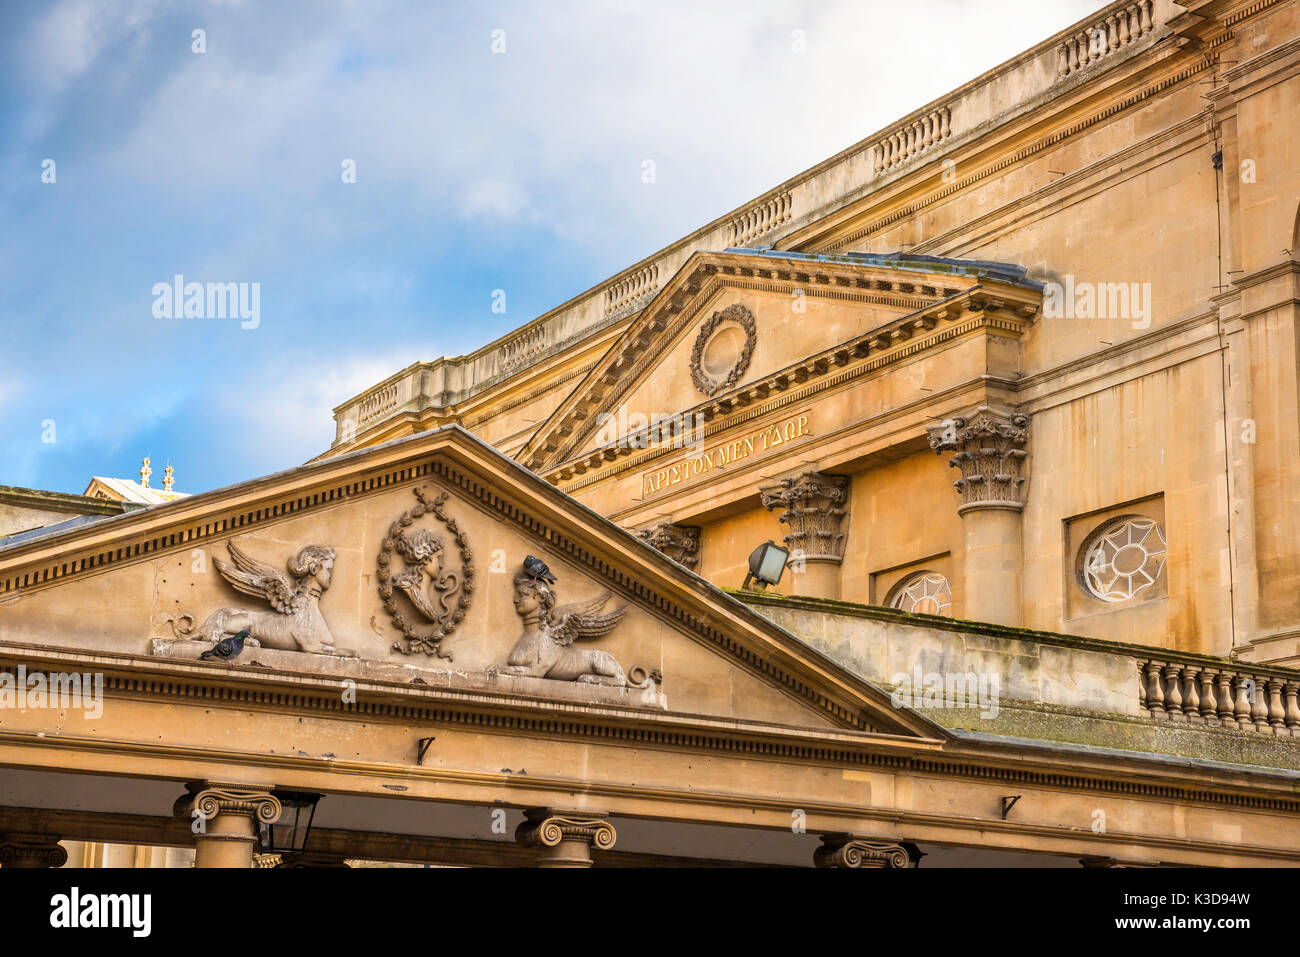 Pump Room Bath UK, view of the pediments adorning the Pump Room and neoclassical portico (foreground) in the centre of the city of Bath, UK. - Stock Image